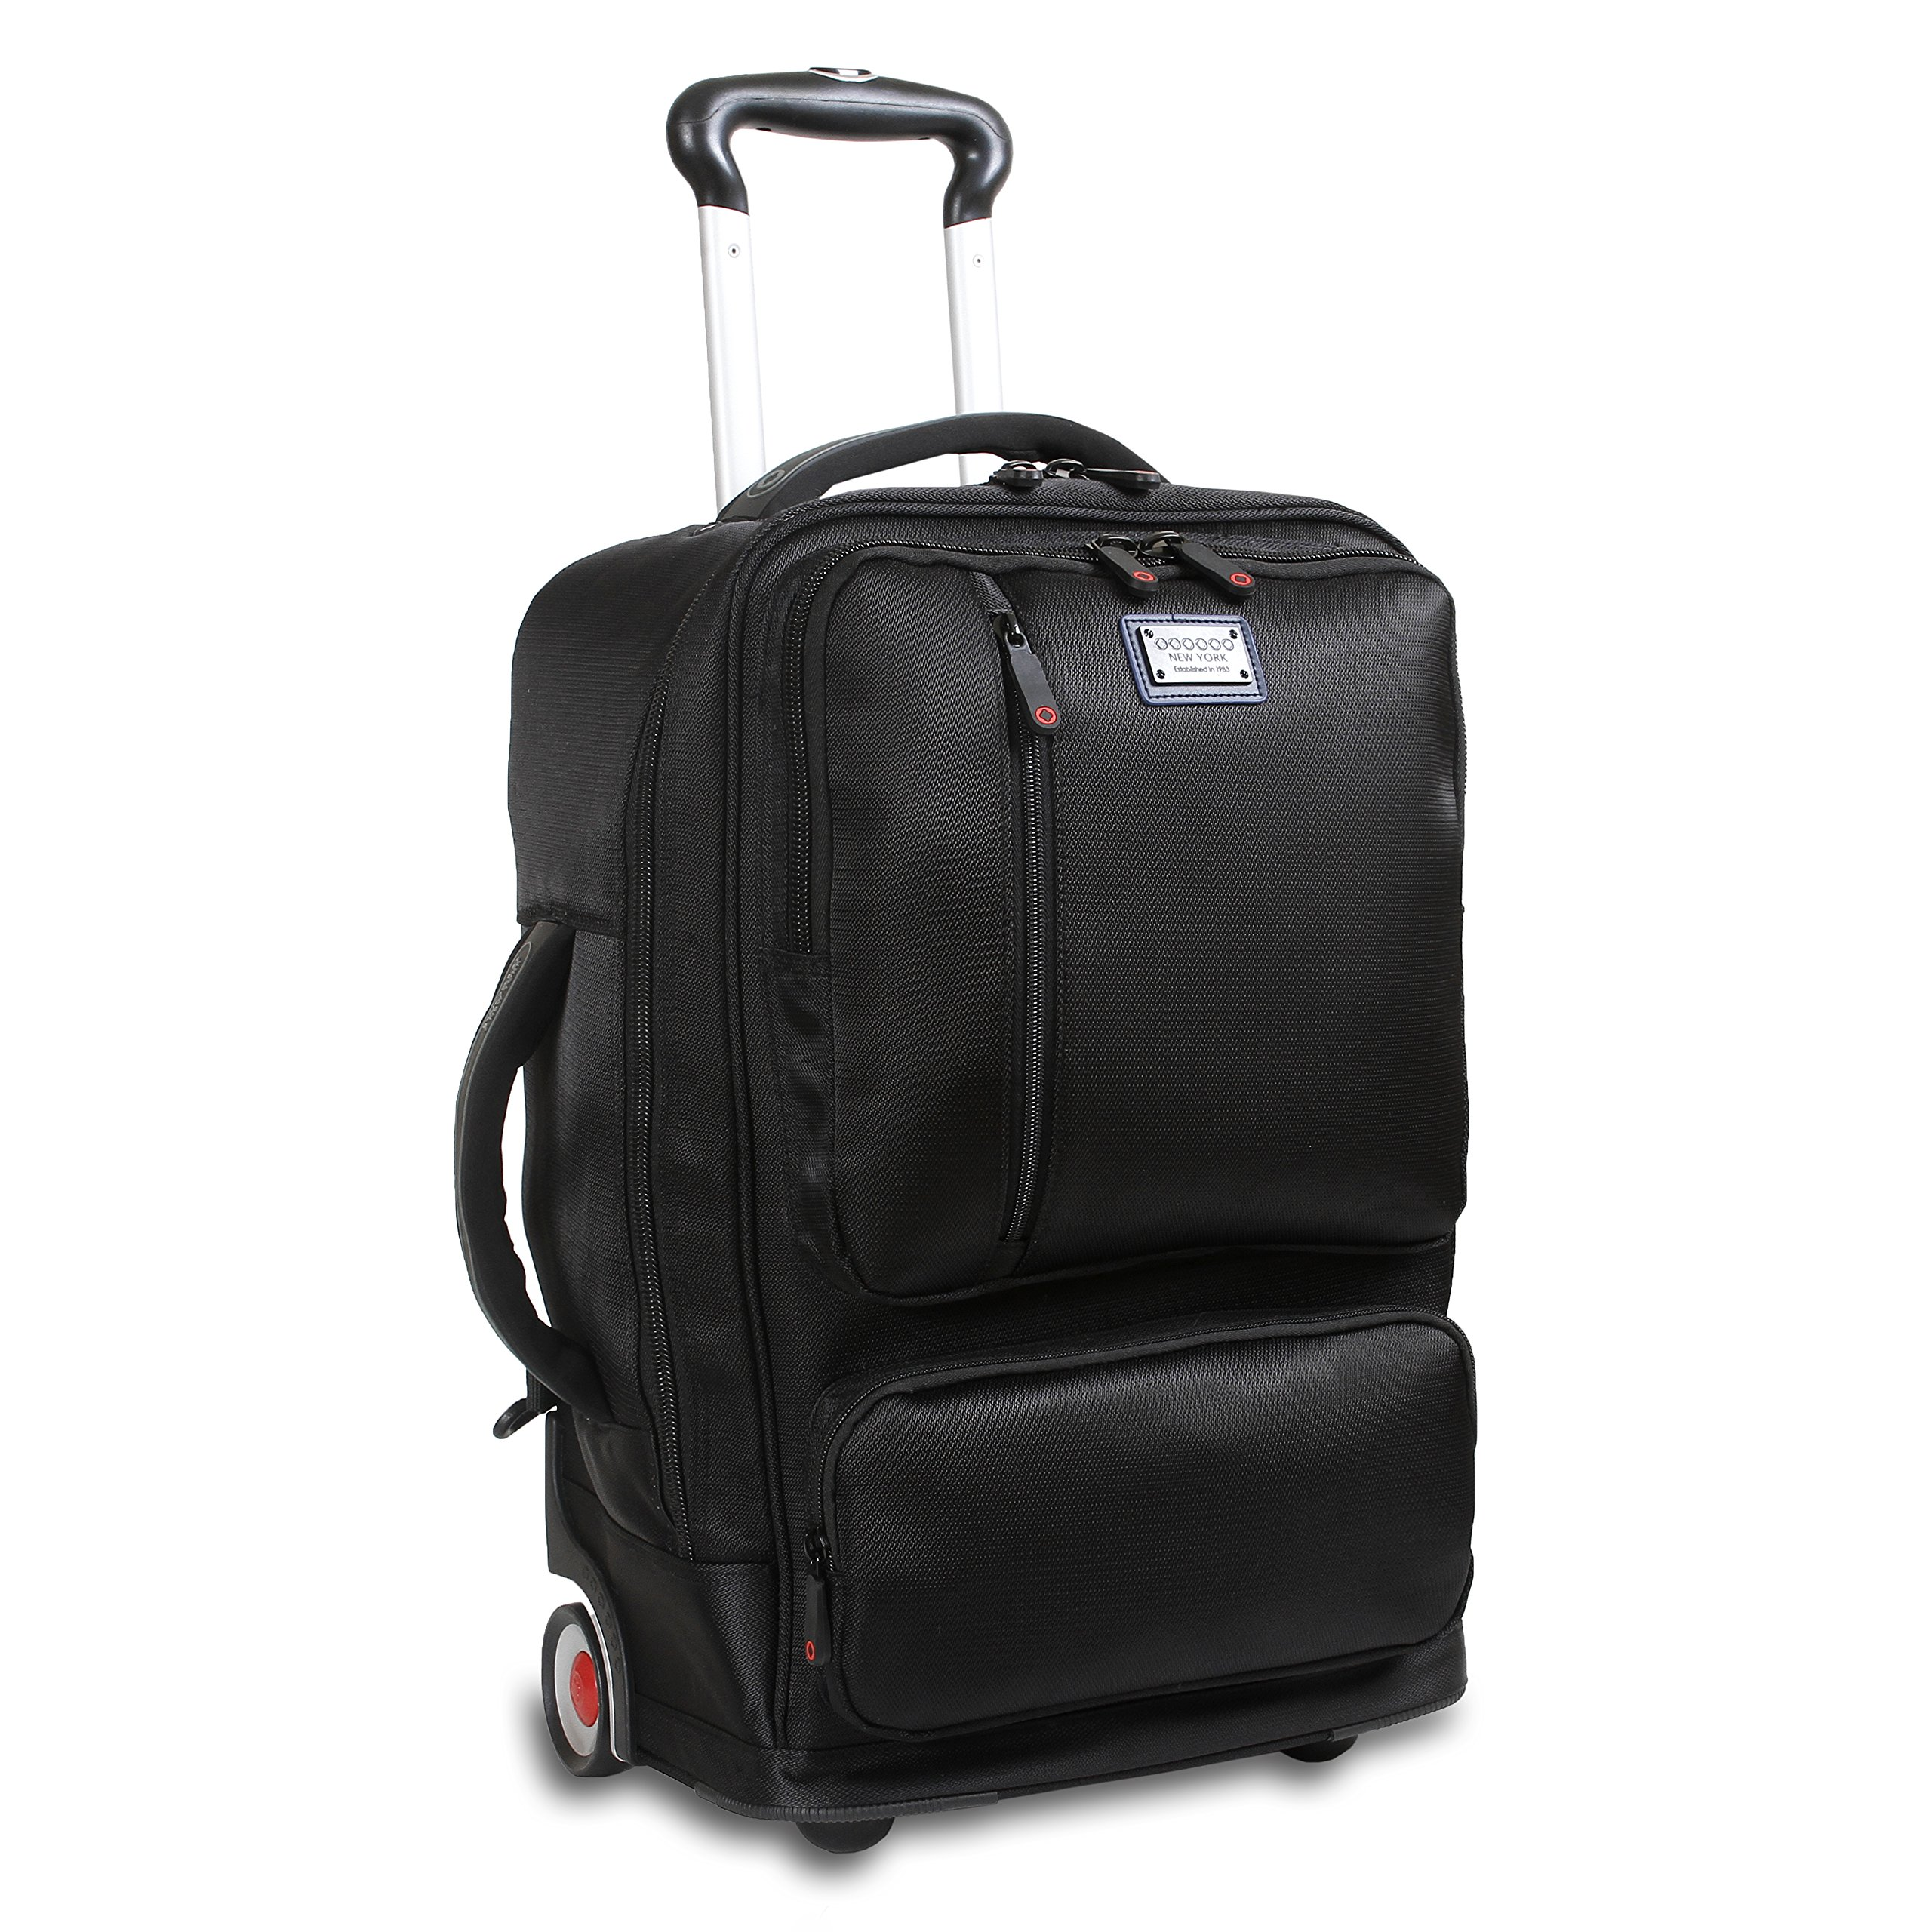 J World New York Oliver Business Rolling Backpack, Black